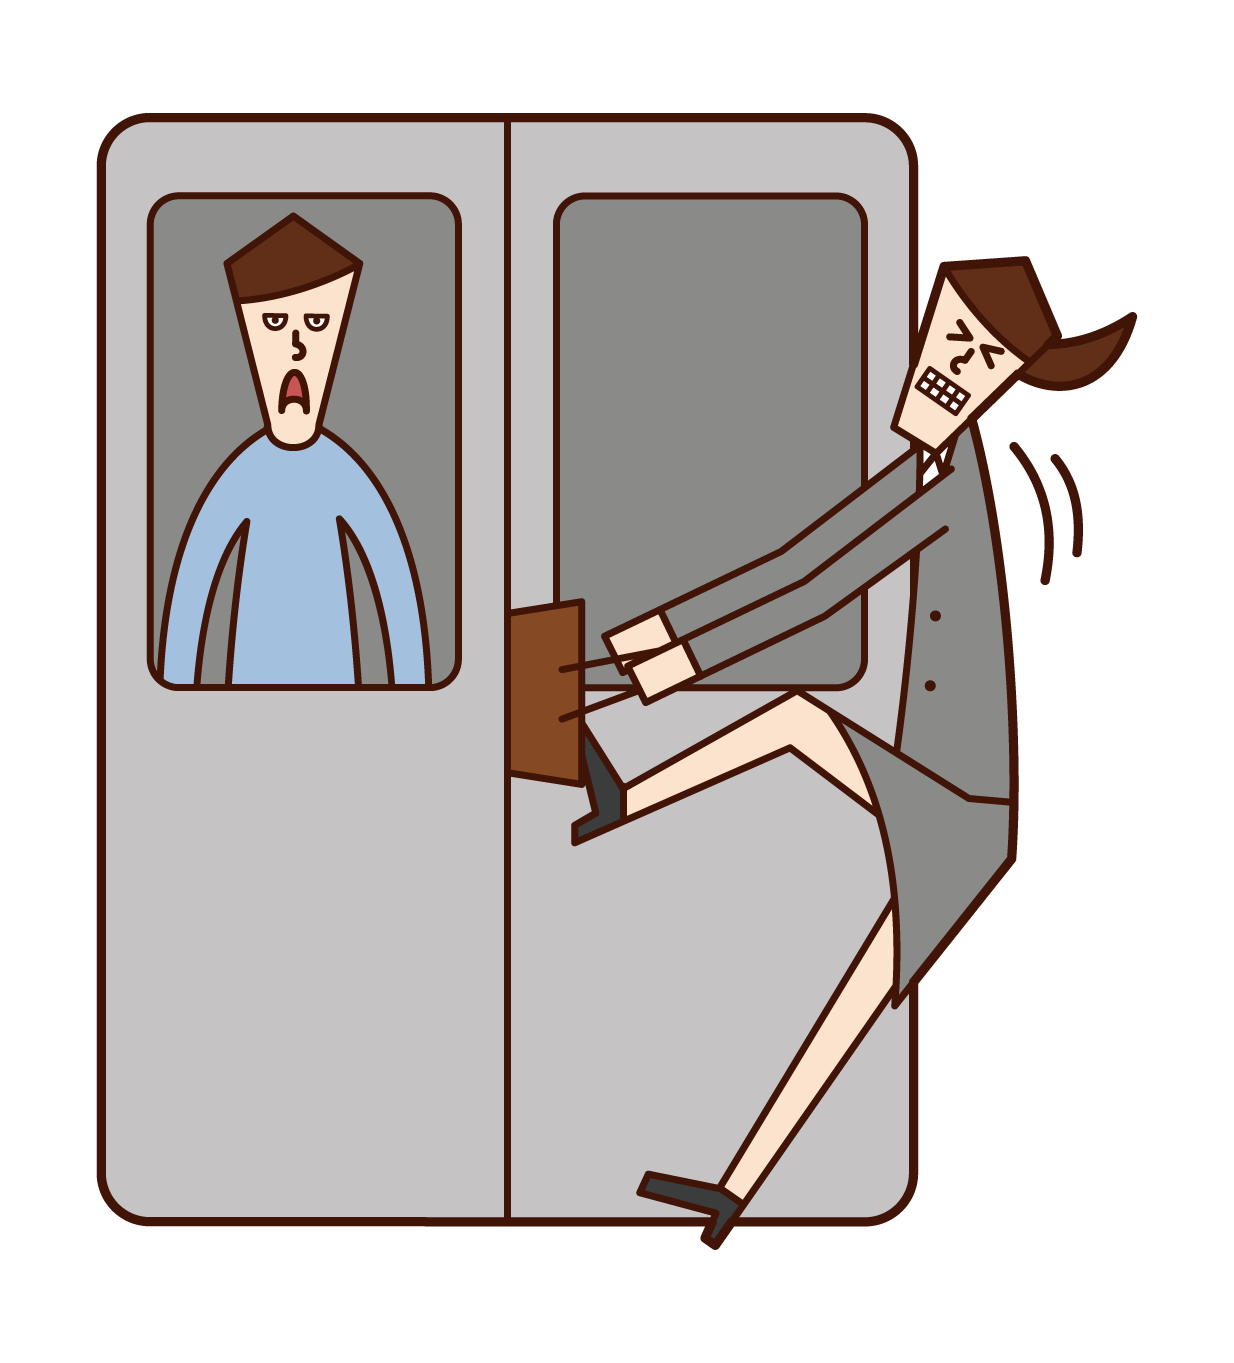 Illustration of a woman with luggage stuck in a train door